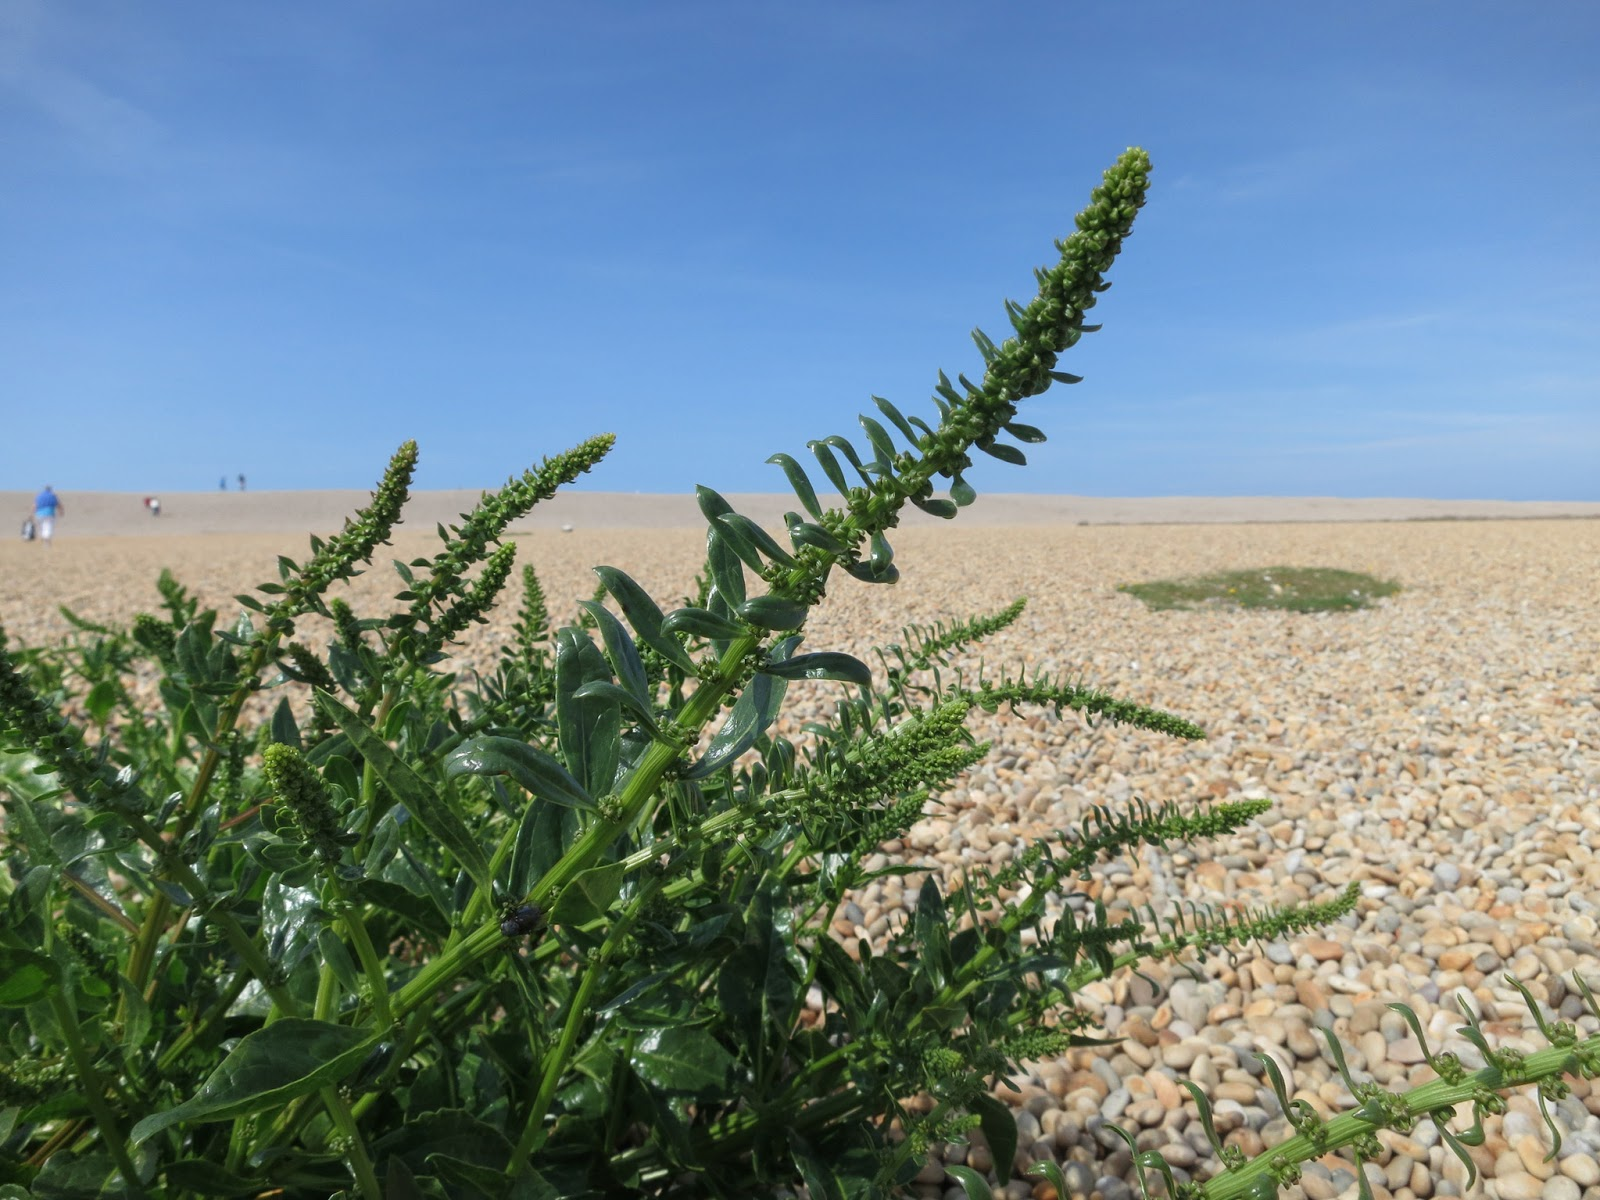 The flower/seed spikes of a sea beet plant on Chesil Beach.